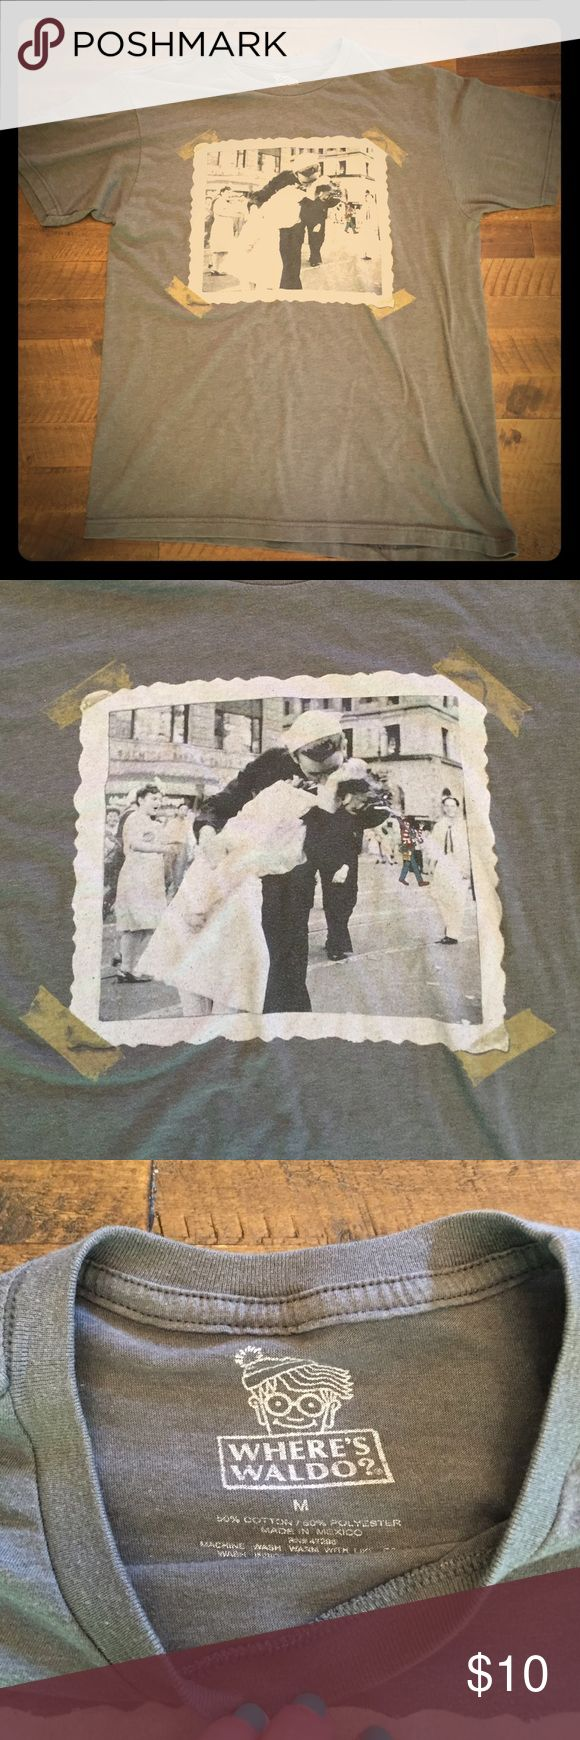 Men's t-shirt - sailor kissing wife! Unique men's tshirt. Sailor kissing wife/girlfriend in what is designed to be an old picture. One of the most unique shirts I have ever seen! In great condition. Where's Waldo Shirts Tees - Short Sleeve